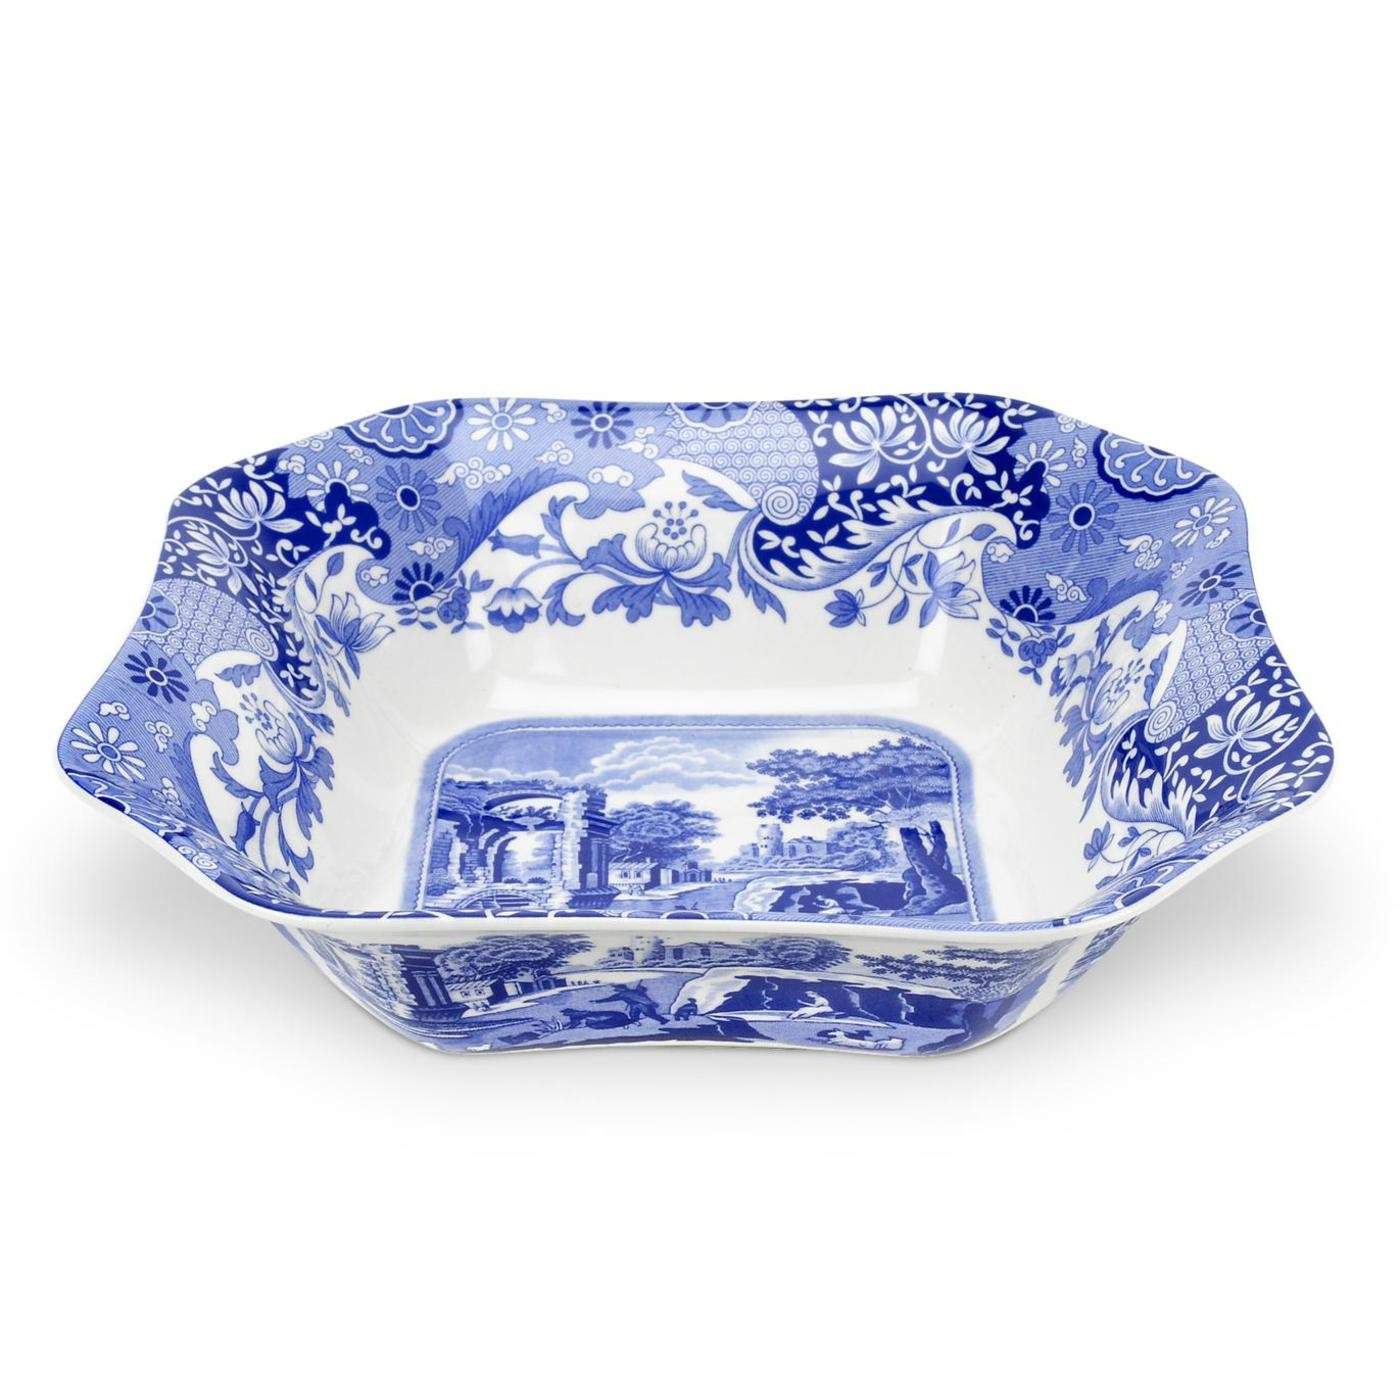 Spode Blue Italian Square Serving Bowl by Spode